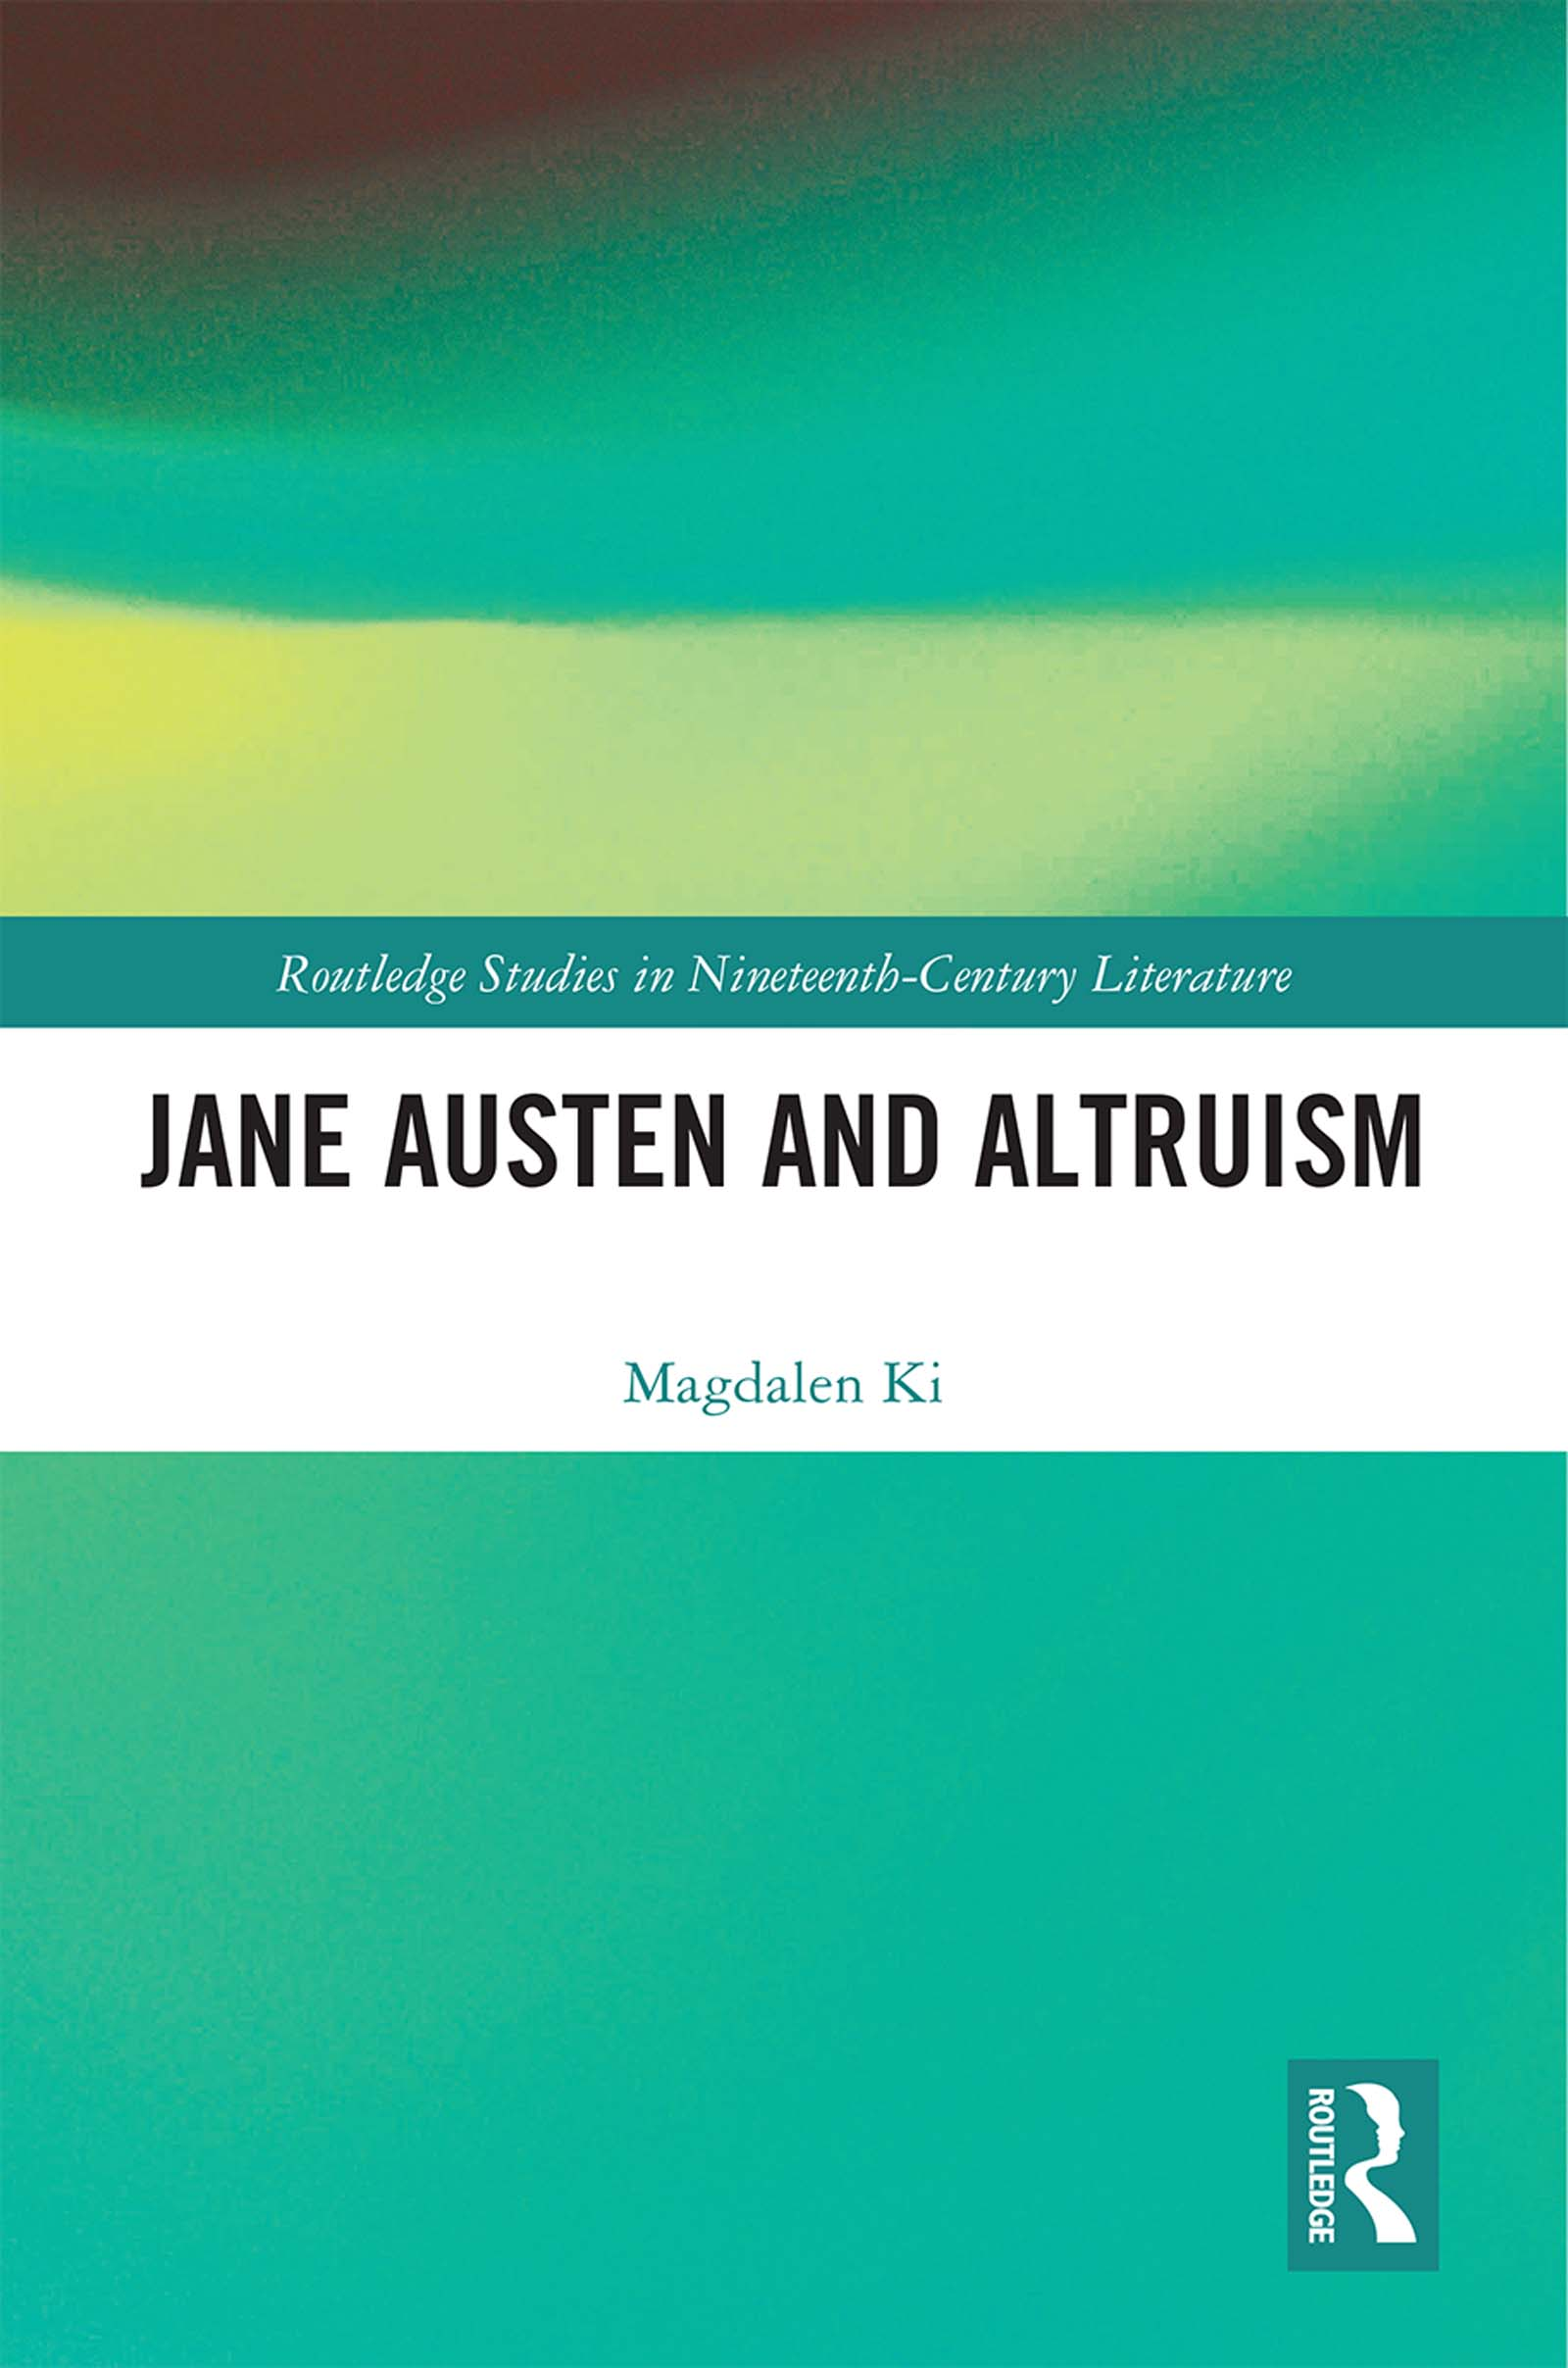 Jane Austen and Altruism book cover